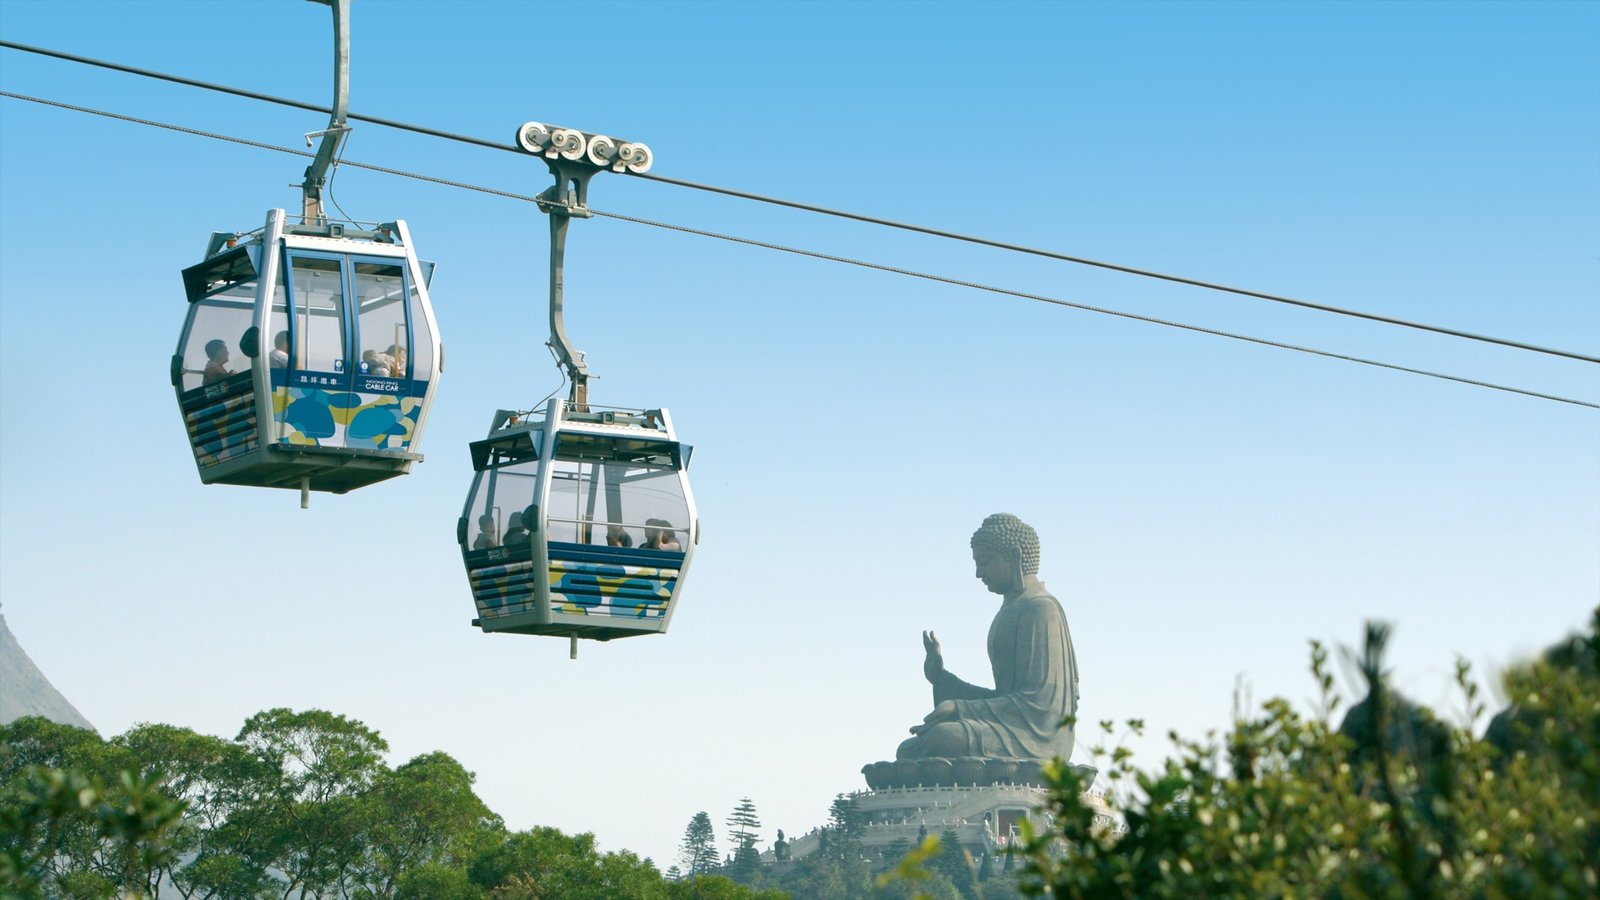 Ngong Ping 360 showing a statue or sculpture